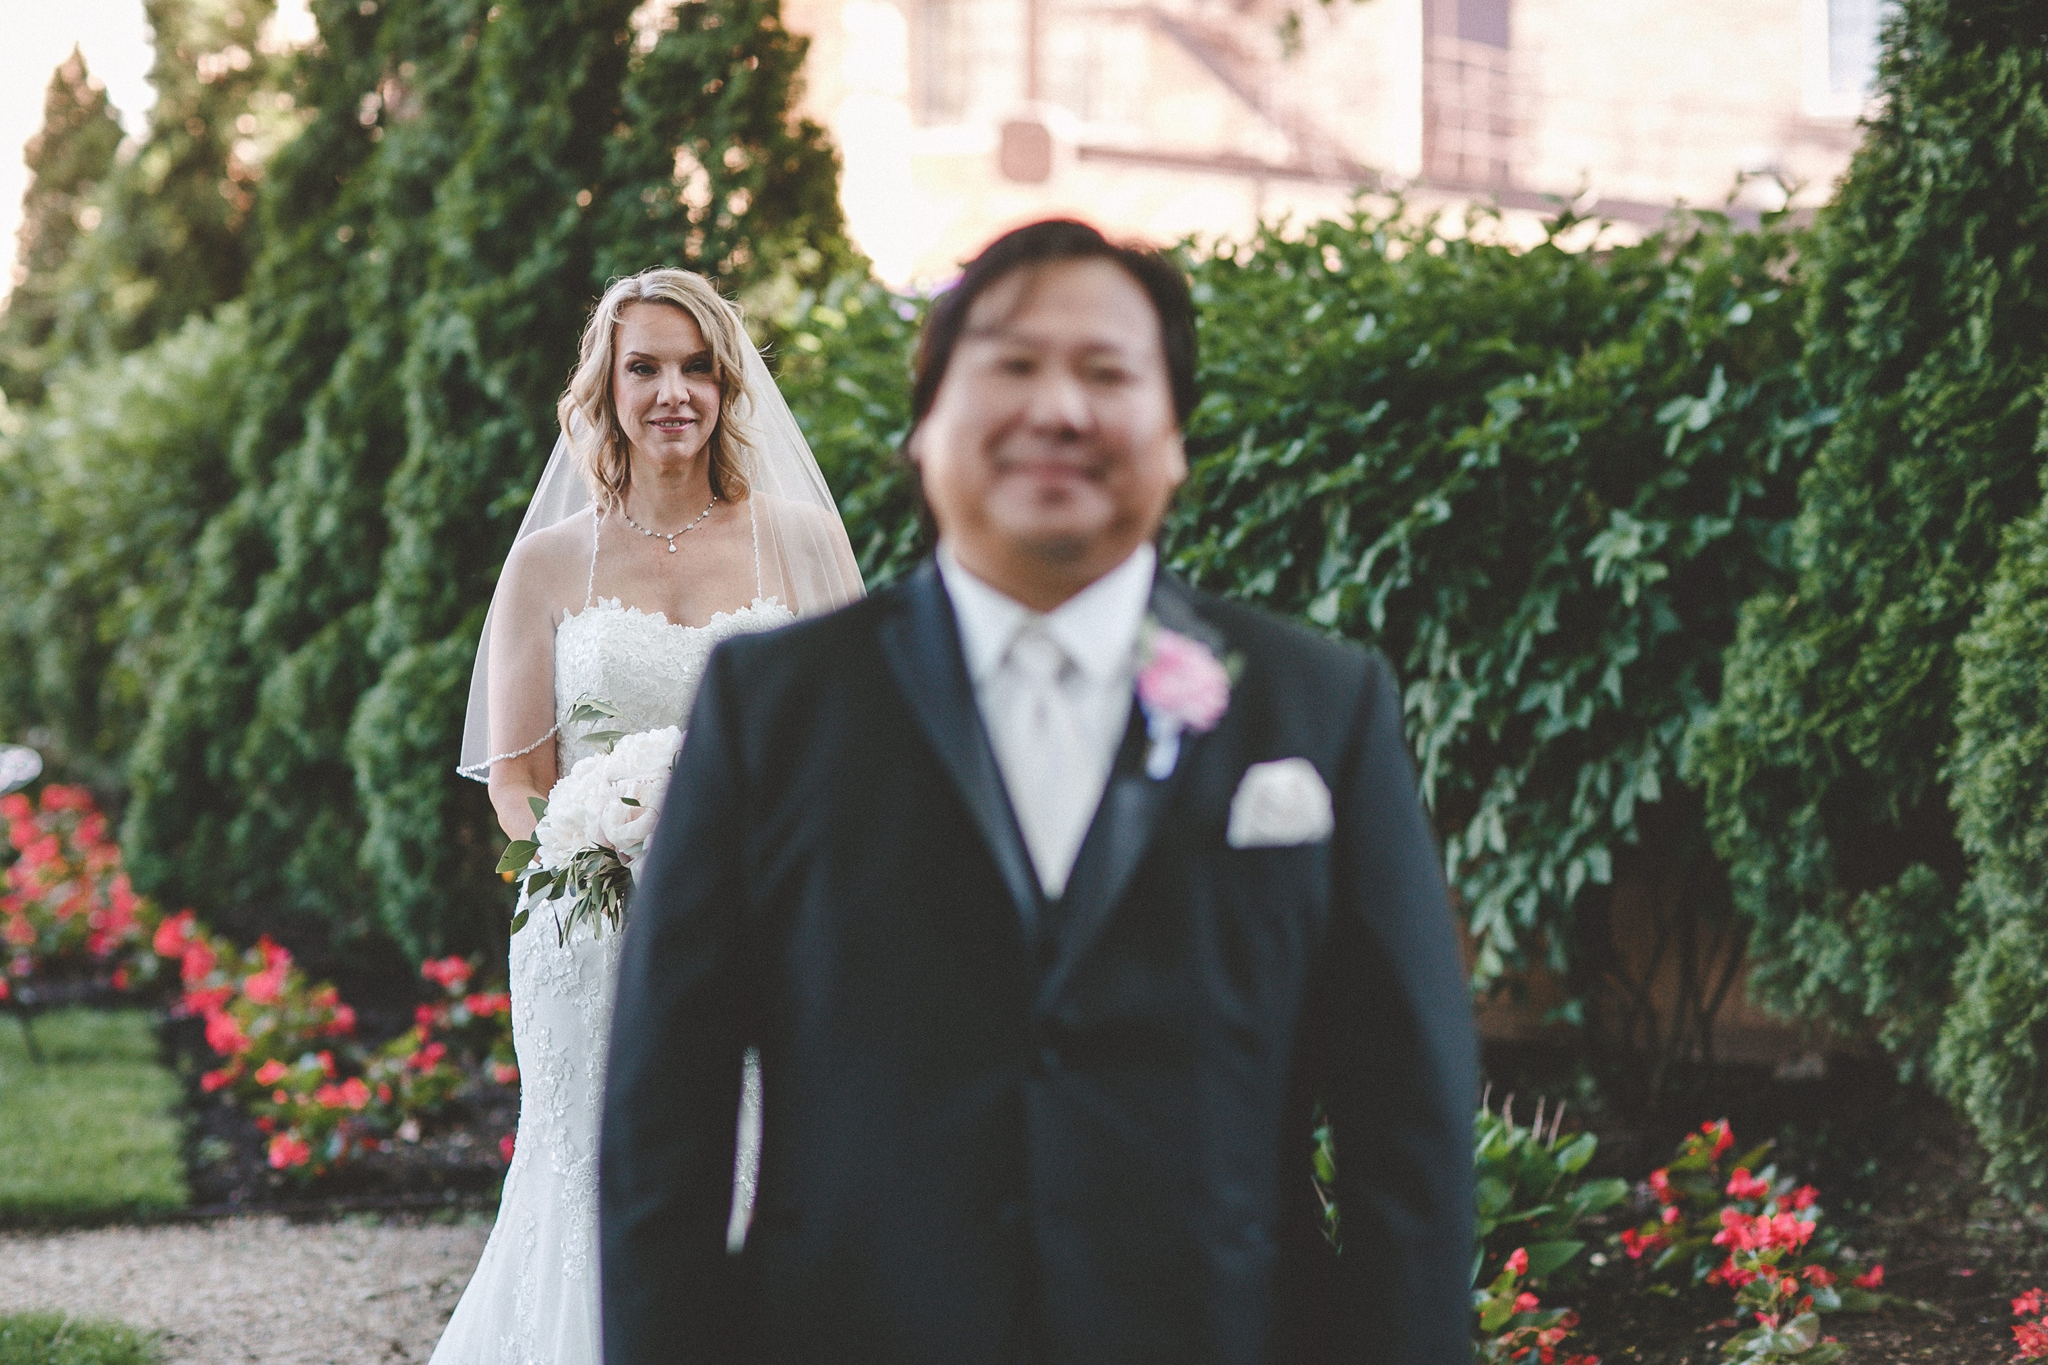 hotel_baker_st_charles_IL_wedding_photographer_0015.jpg